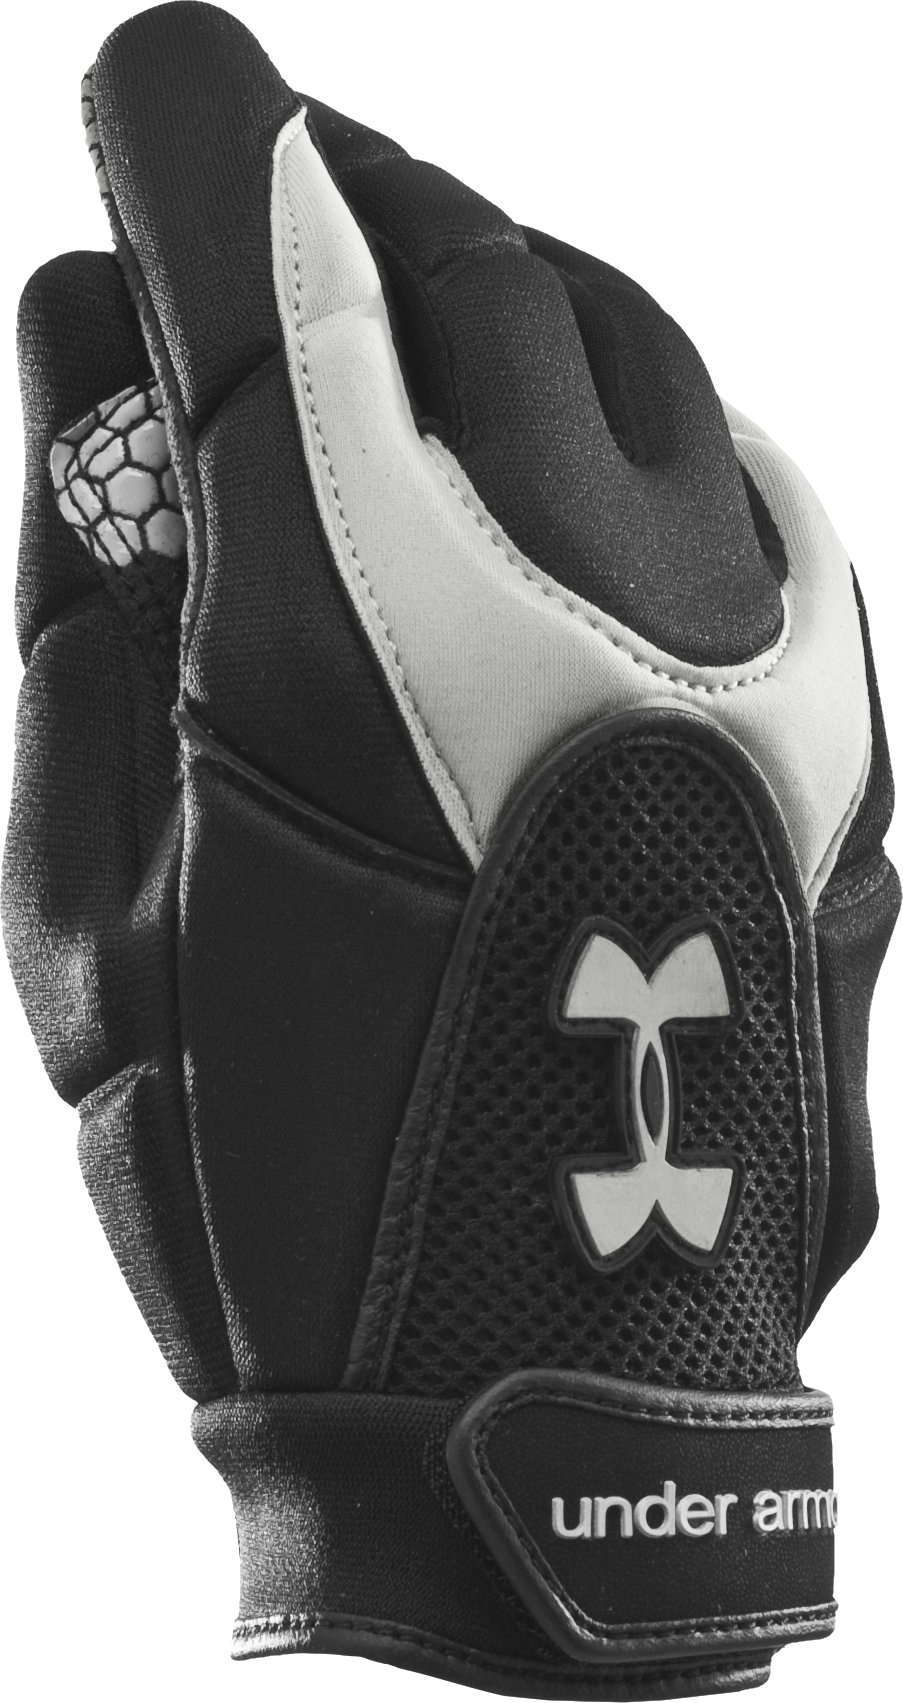 Women's Lax Glove, Black